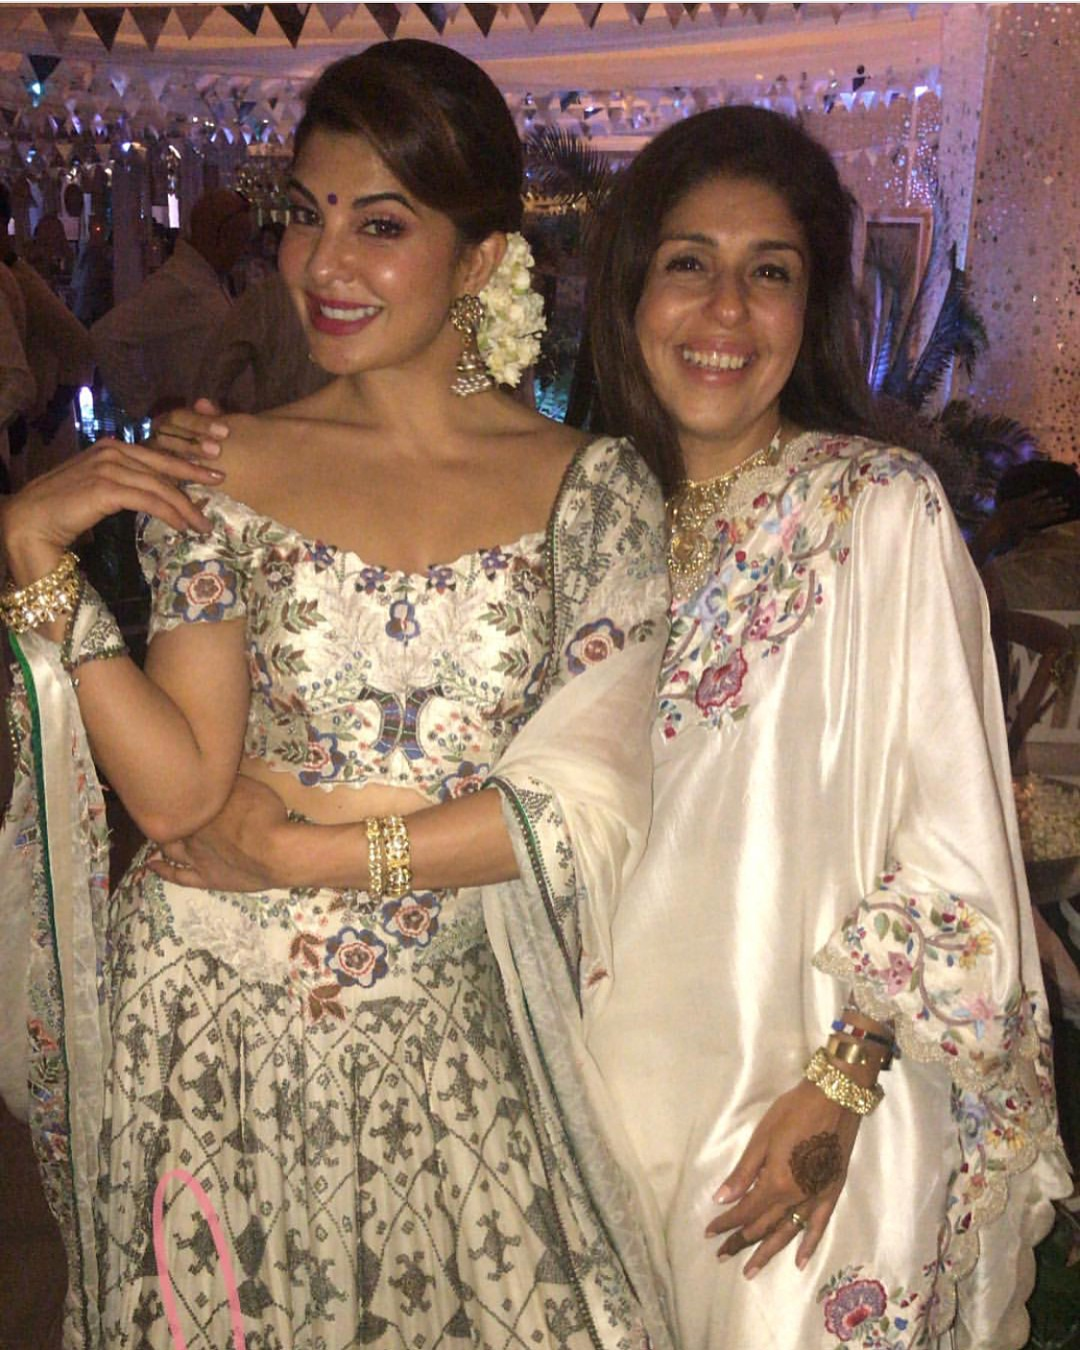 7-1 Sonam Kapoor Wedding Pics - Engagement and Complete Wedding Pictures